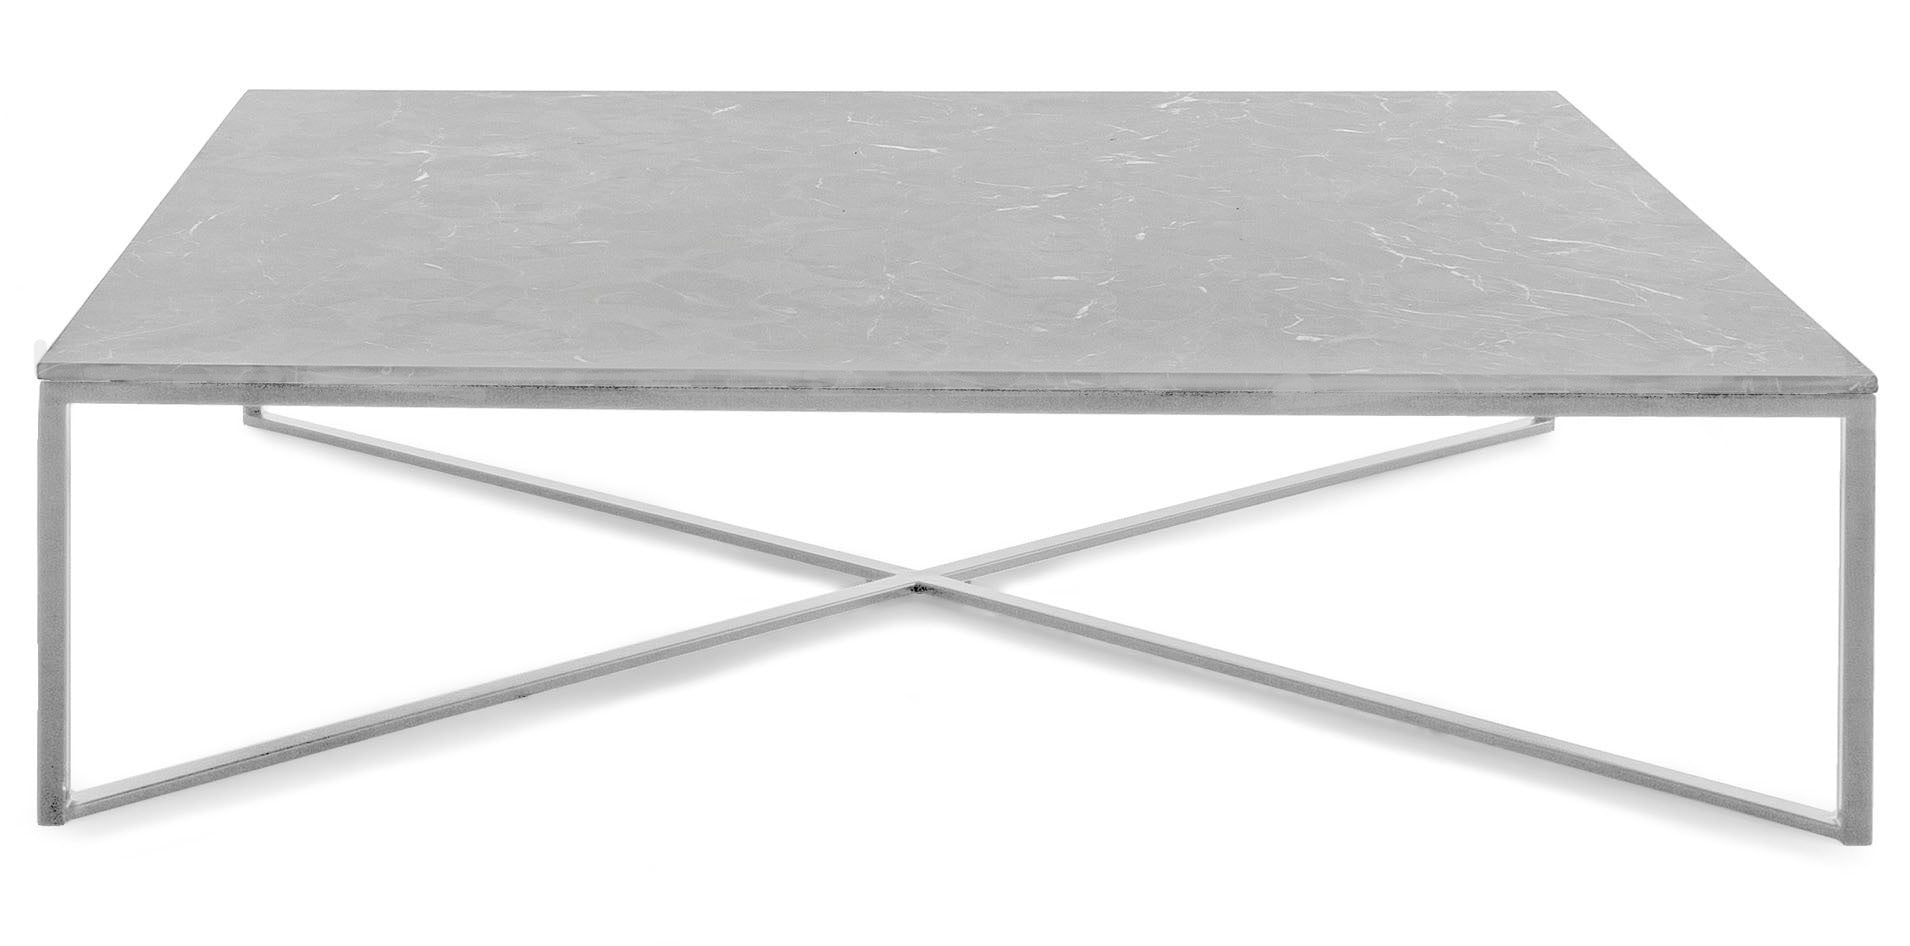 Luna White Marble Coffee Table - MJM Furniture